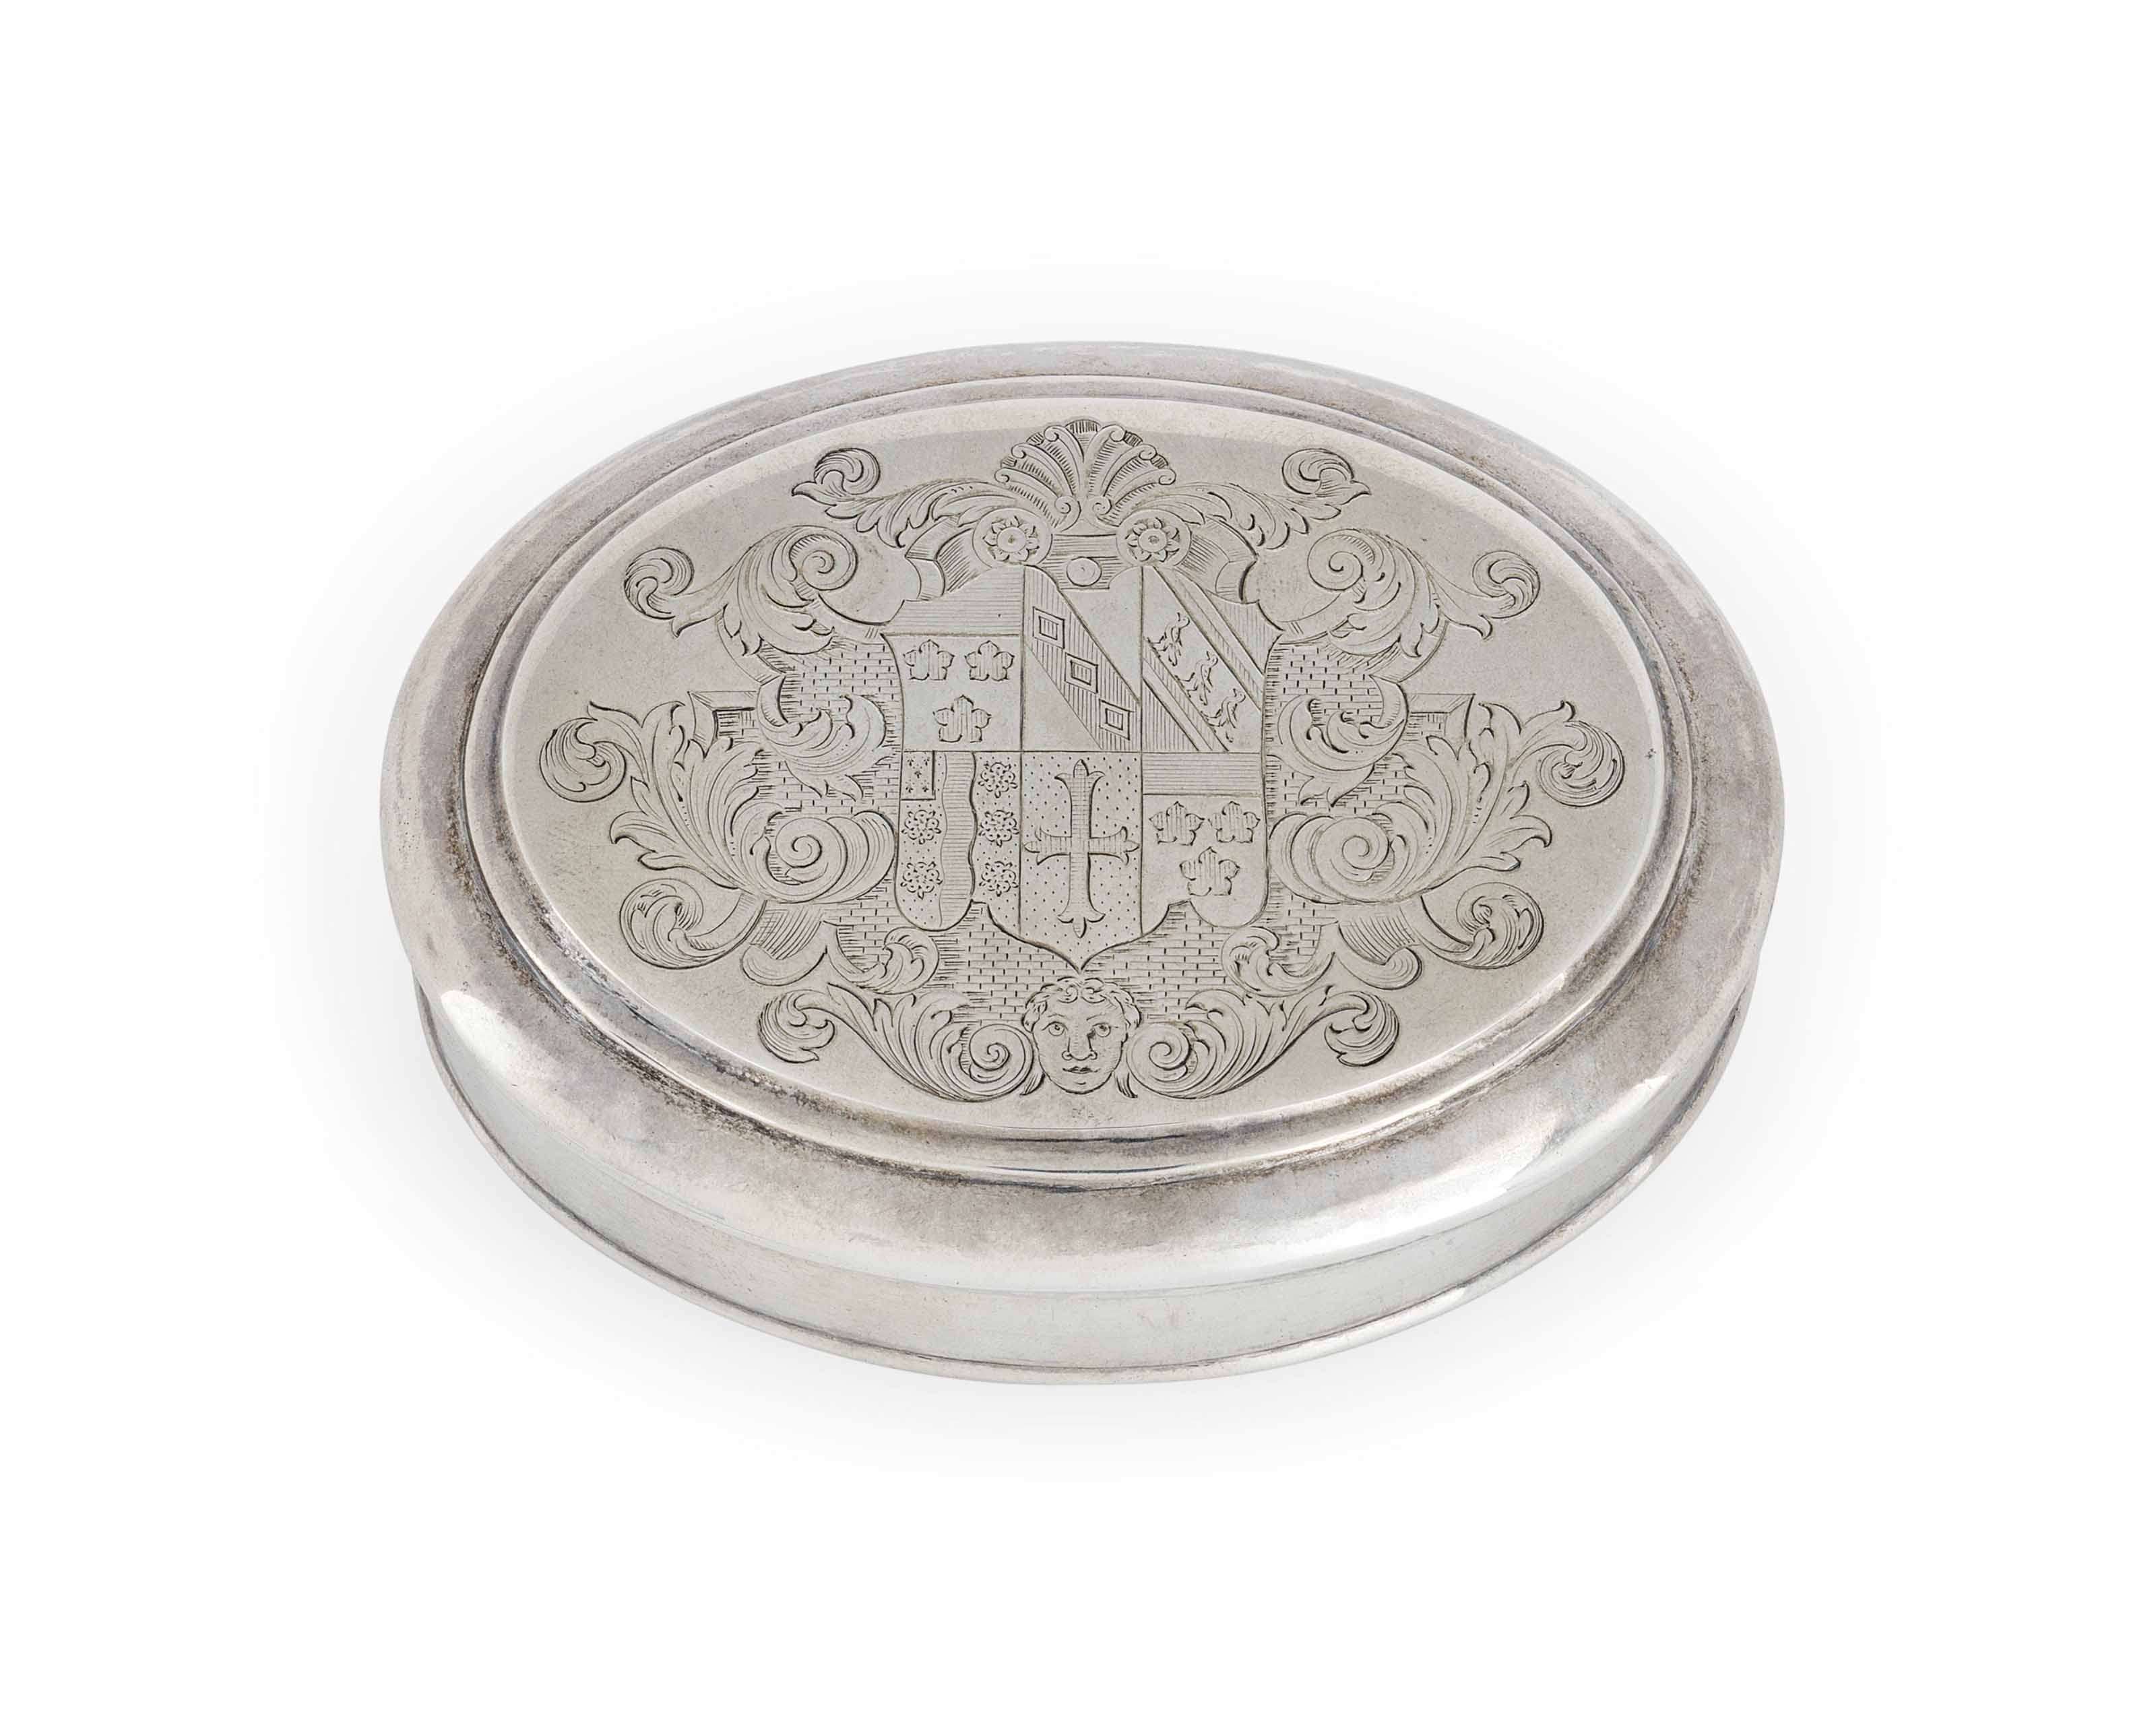 A GEORGE II SILVER TOBACCO-BOX